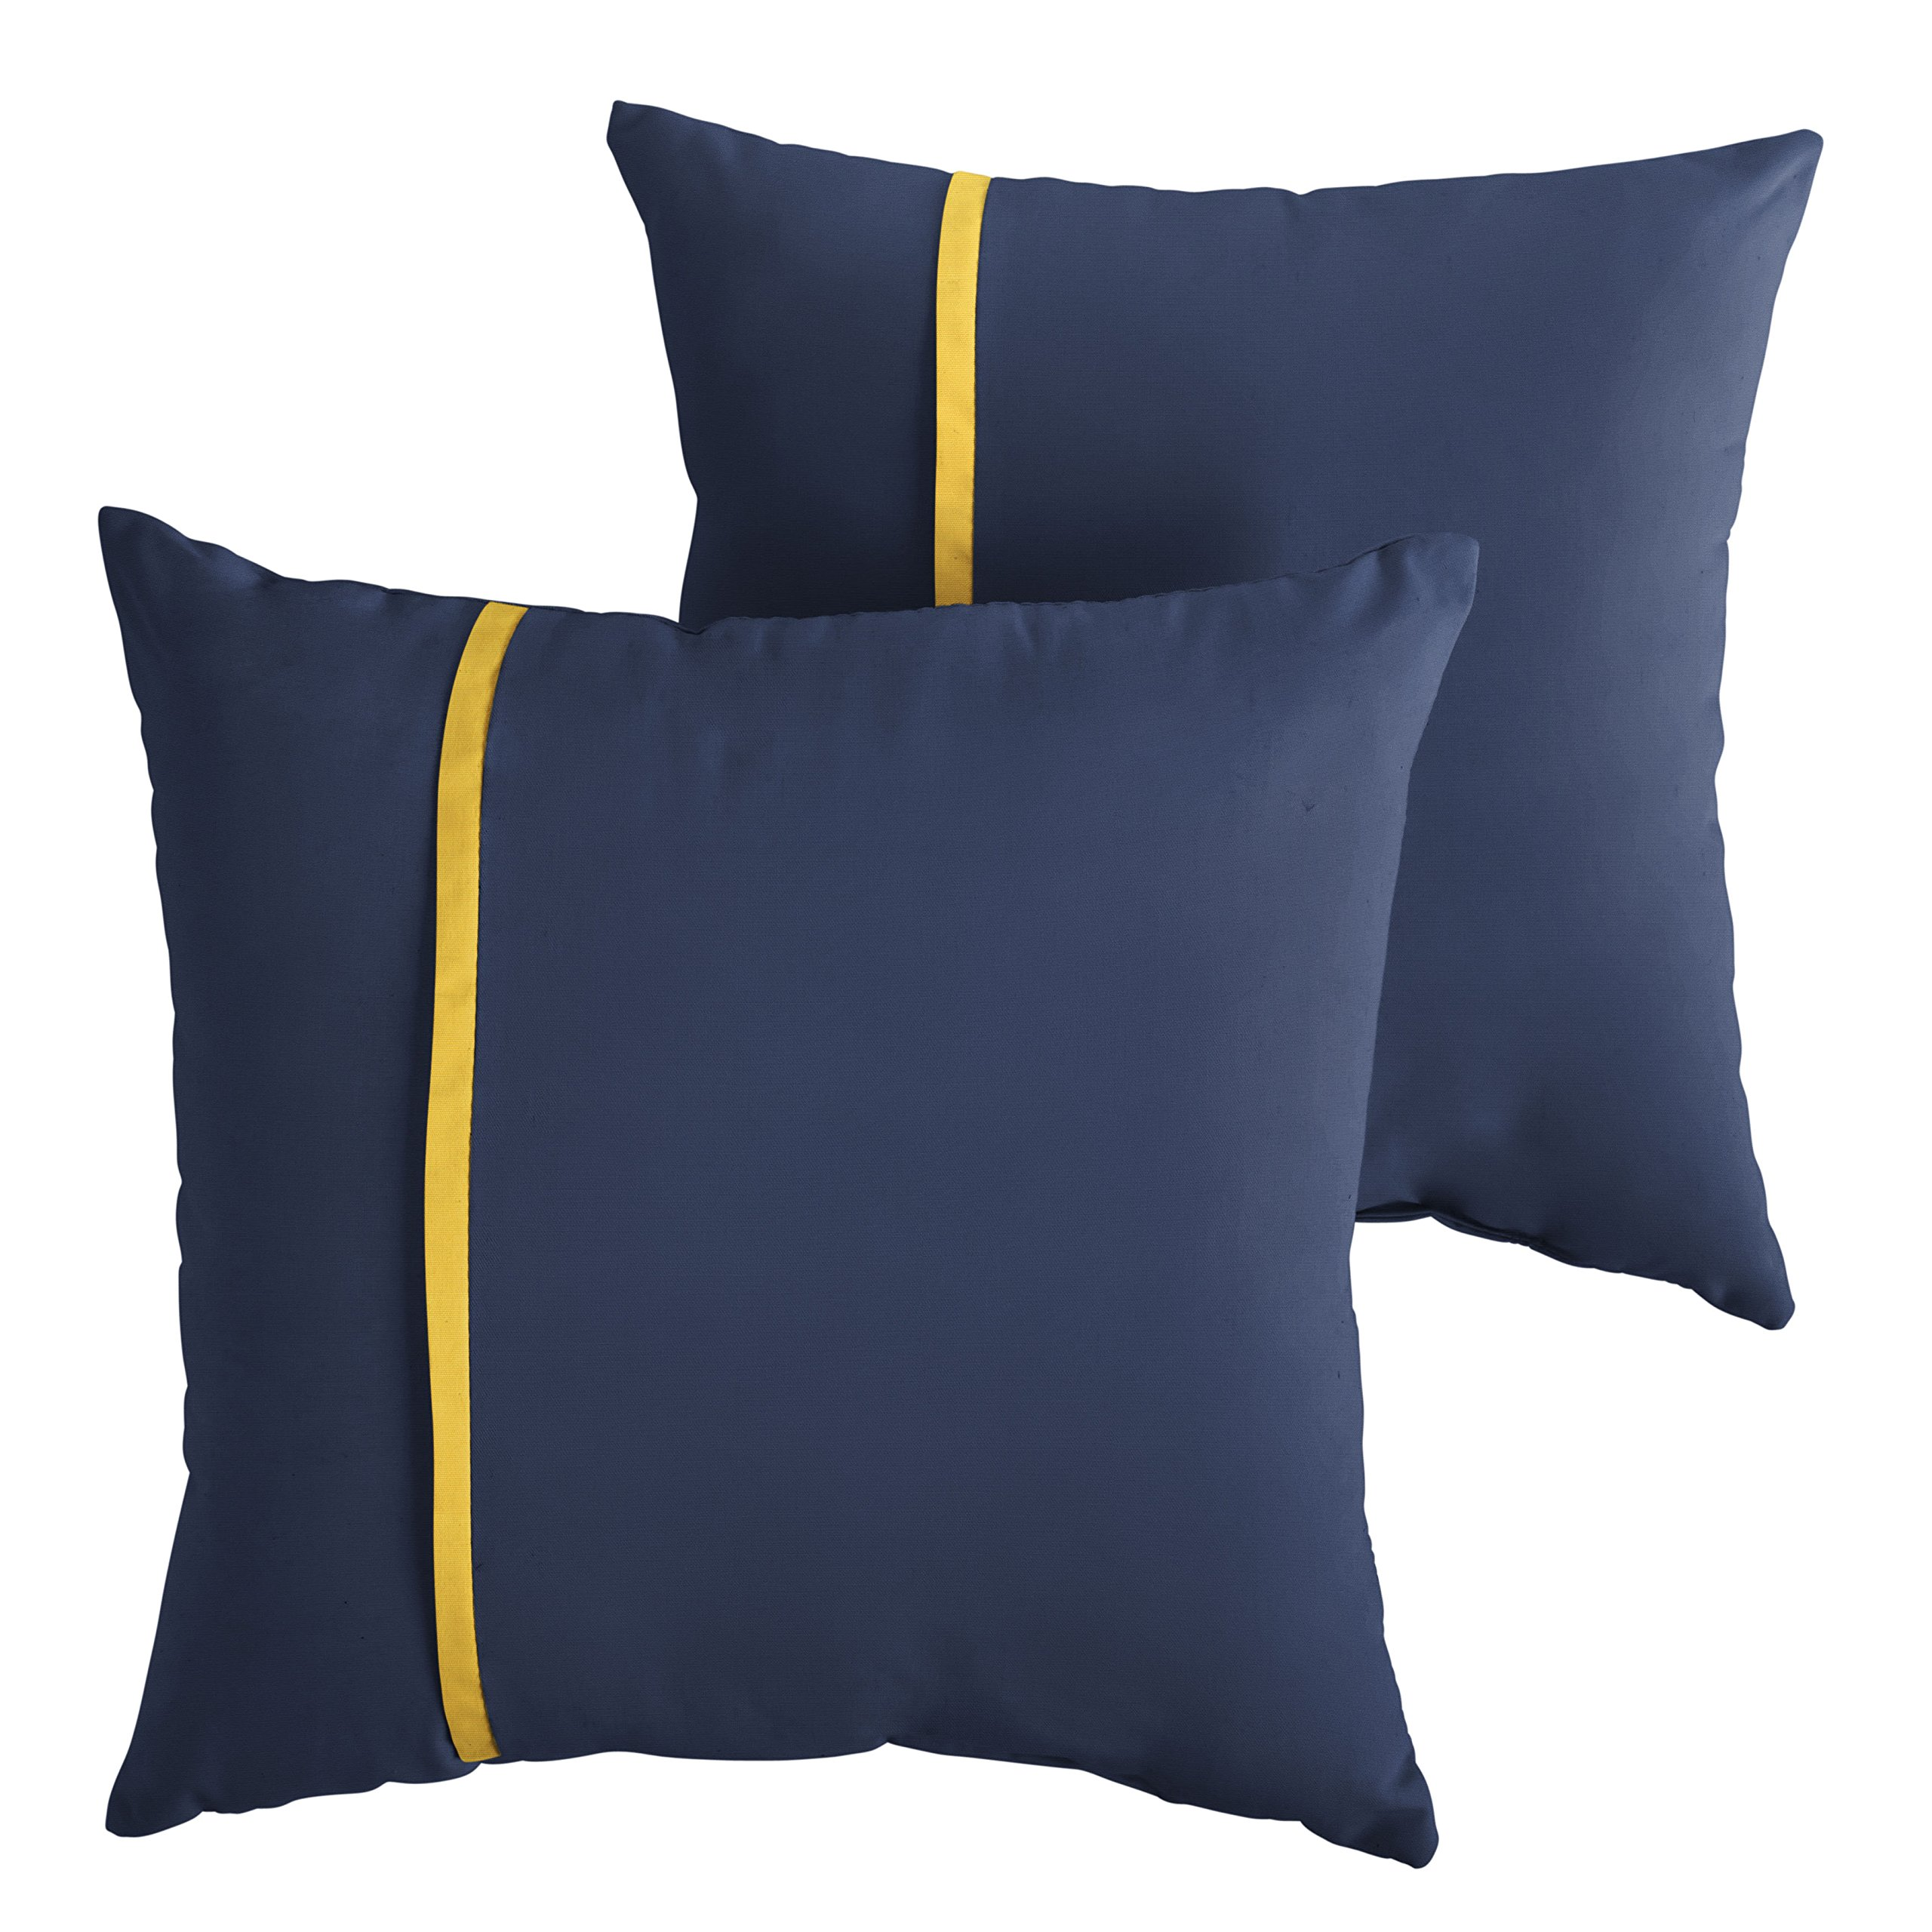 Mozaic Company AMPS113740 Indoor Outdoor Sunbrella Square Pillows, Set of 2, 16 x 16, Canvas Navy Blue & Sunflower Yellow